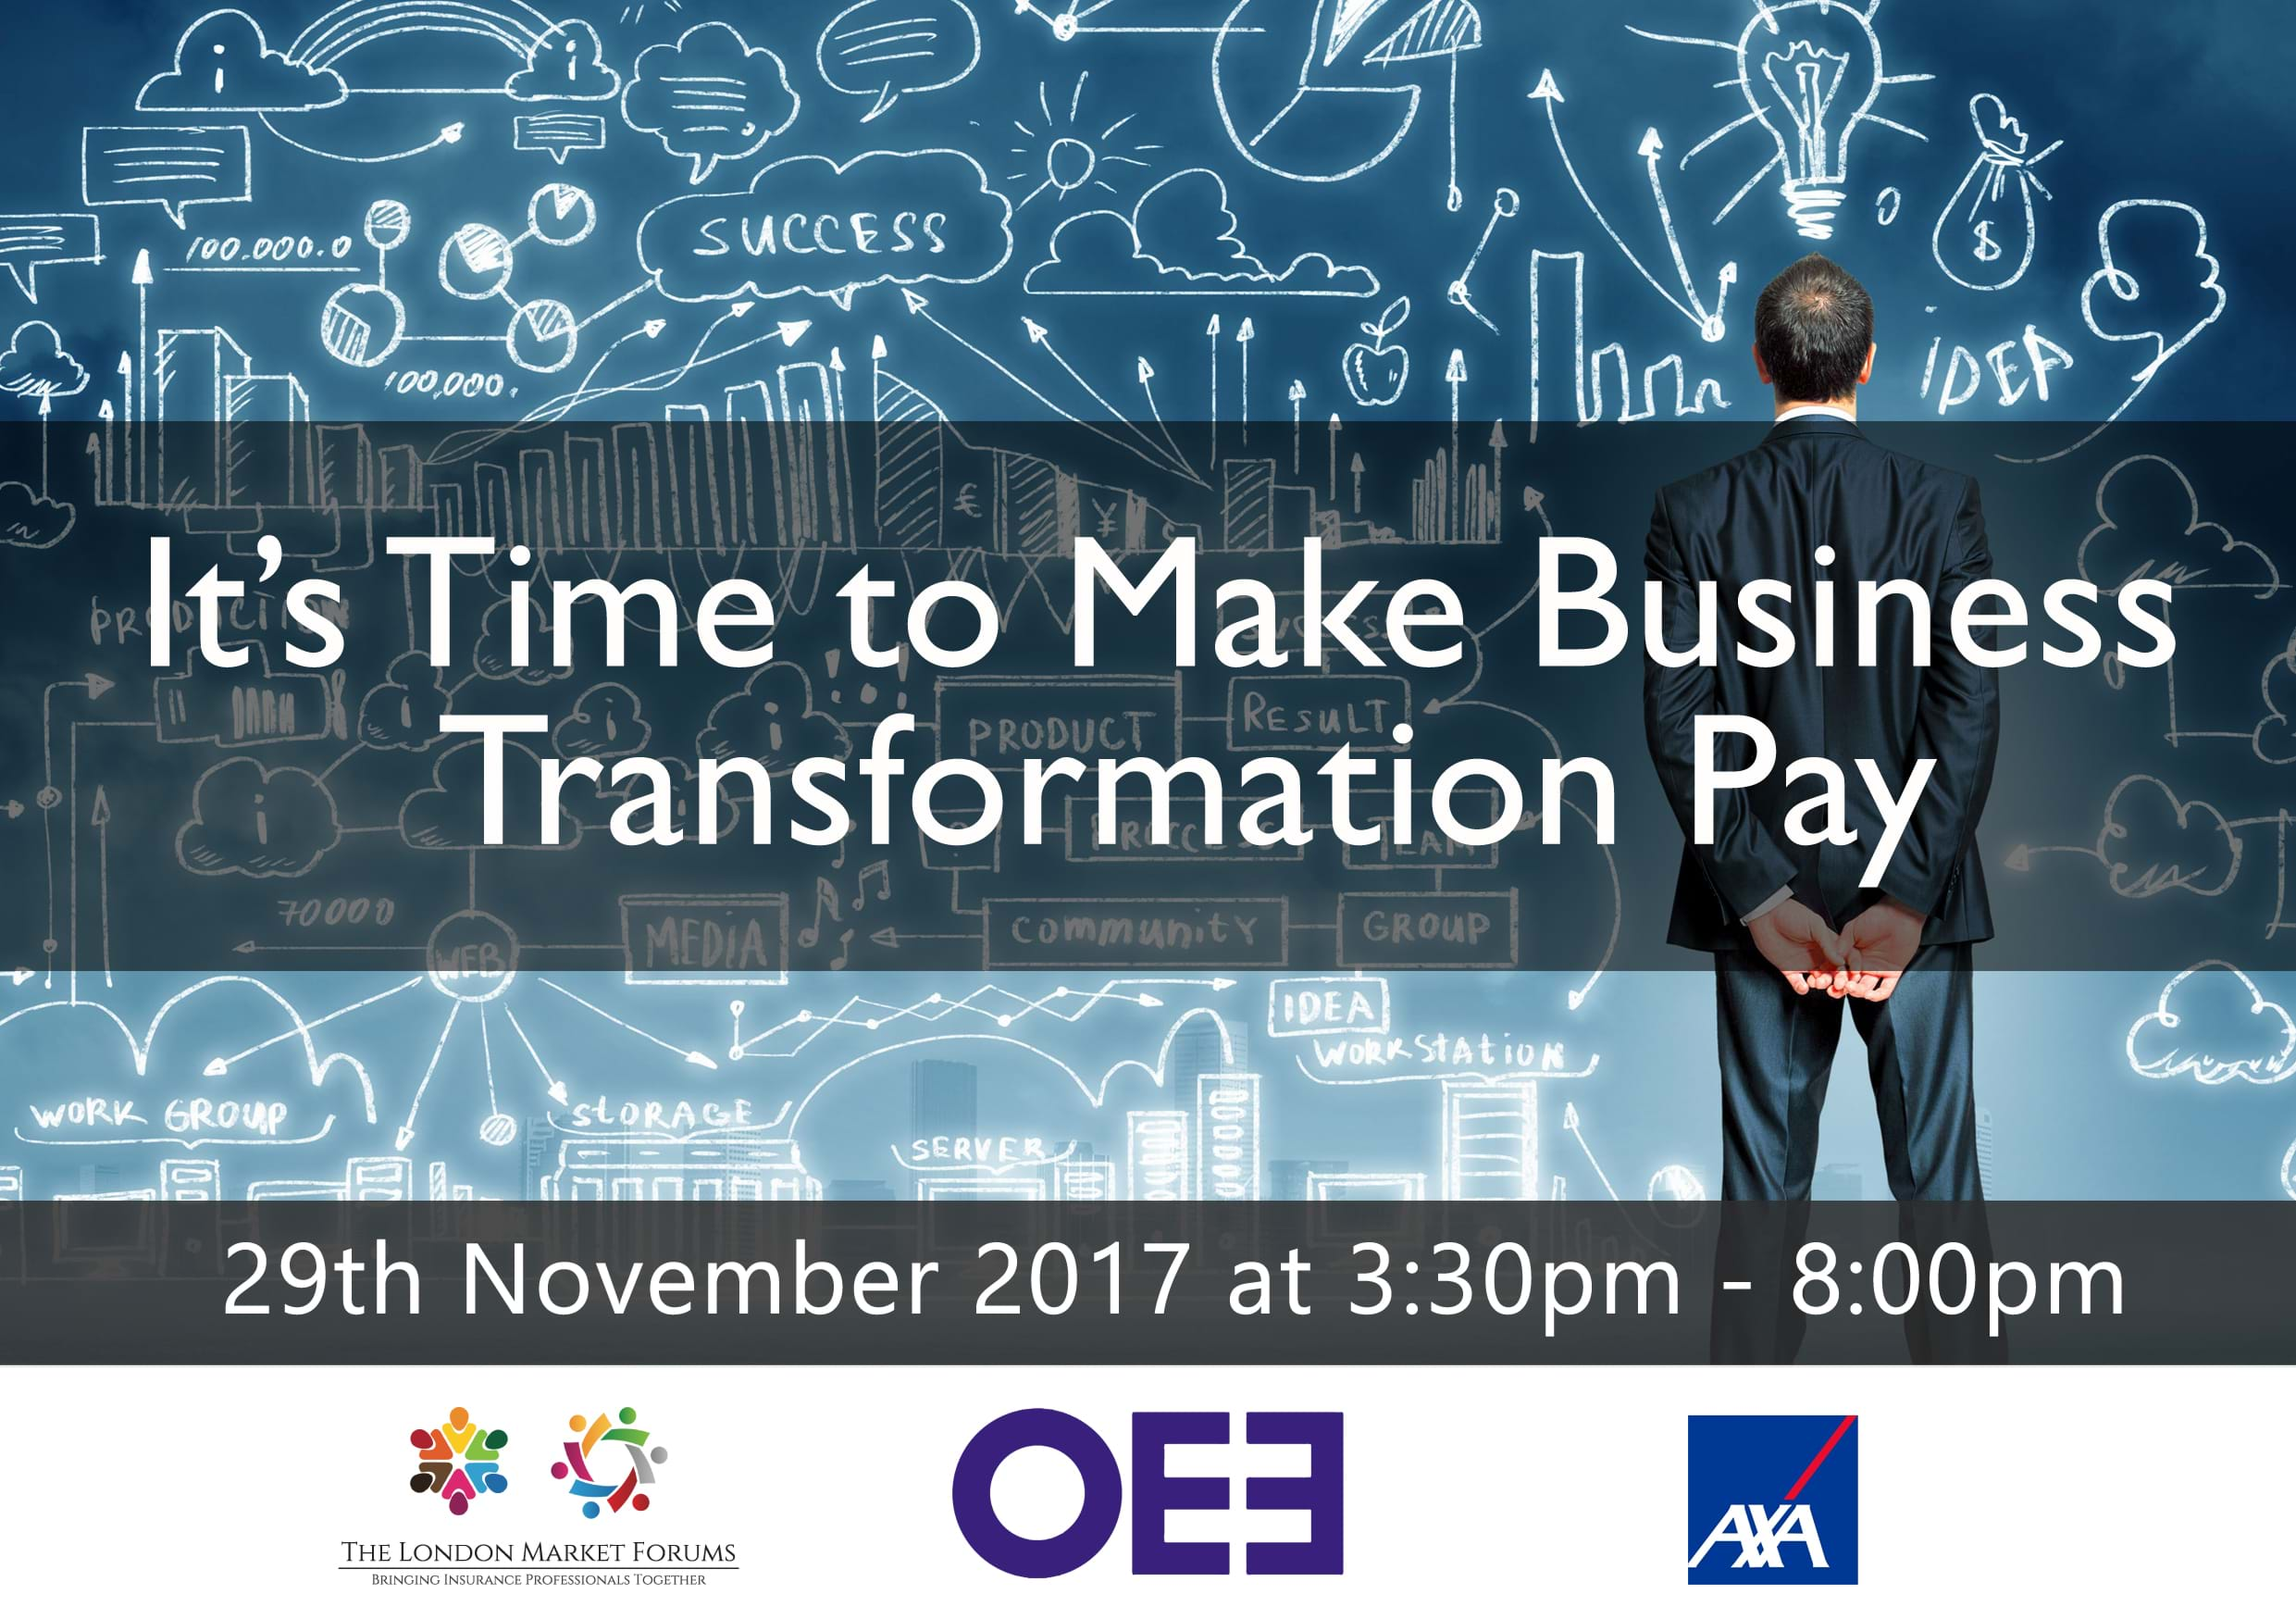 It's Time to Make Business Transformation Pay